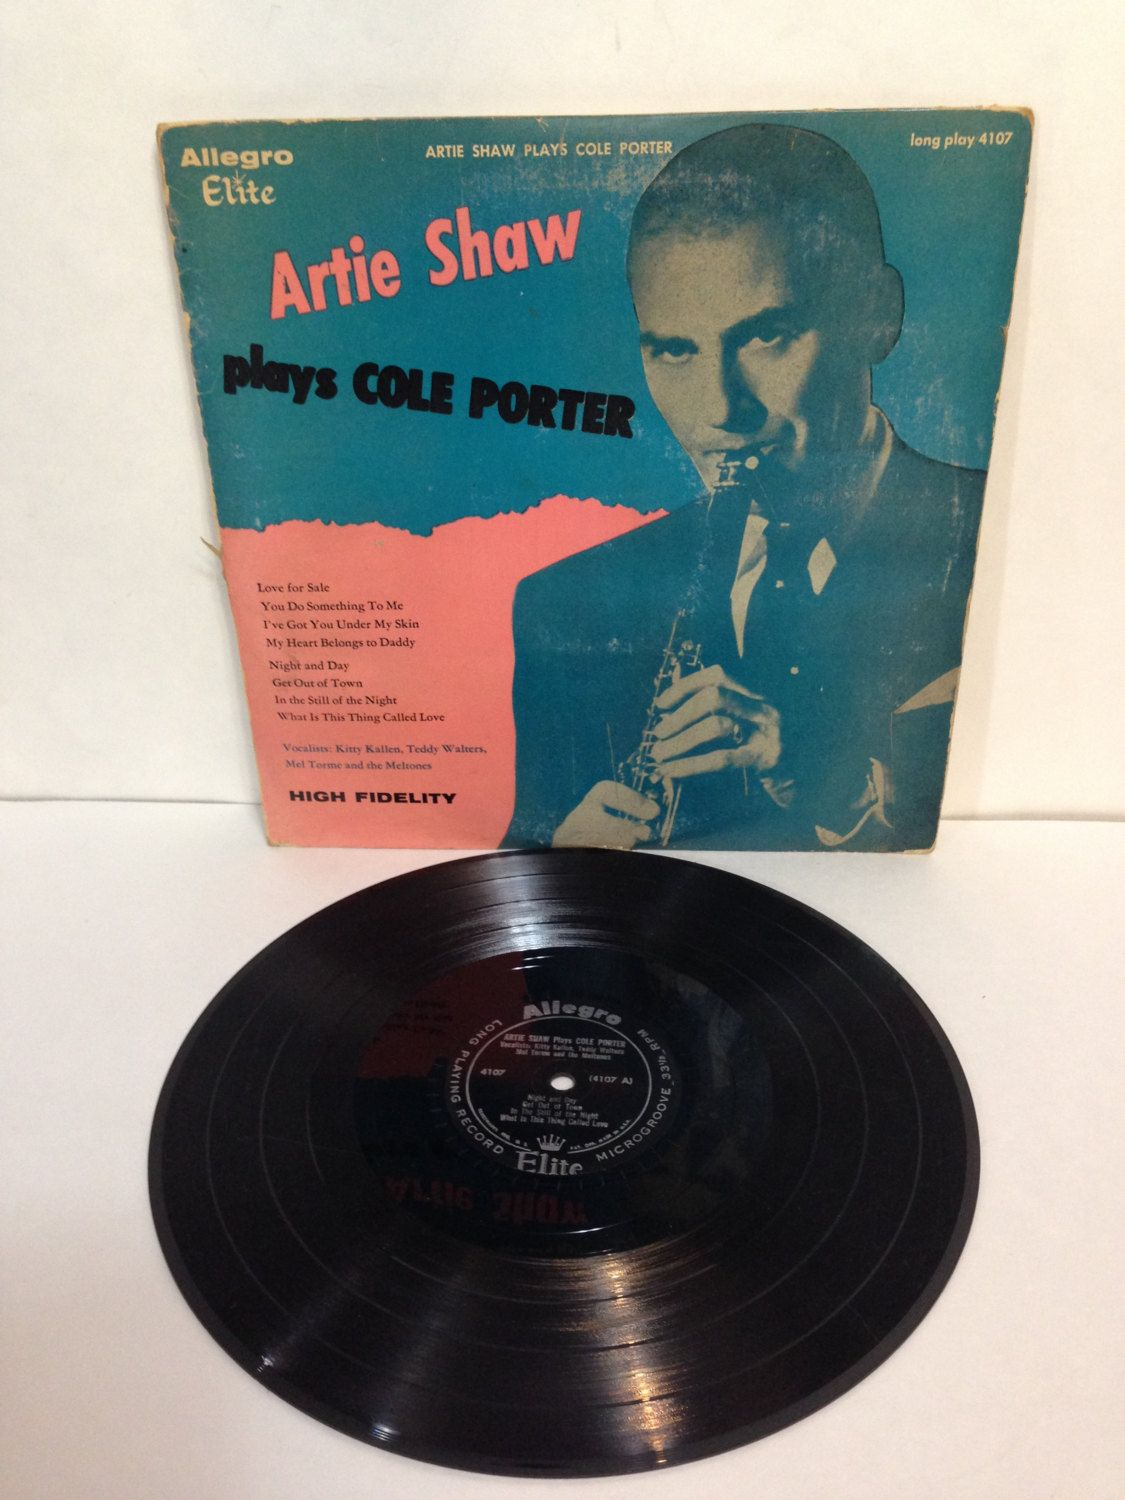 Artie Shaw Plays Cole Porter Vintage Vinyl 33 Rpm Record Album 1956 Allegro Elite Record Corp Of America 4107 10 Inch Long P Record Album Records Day For Night